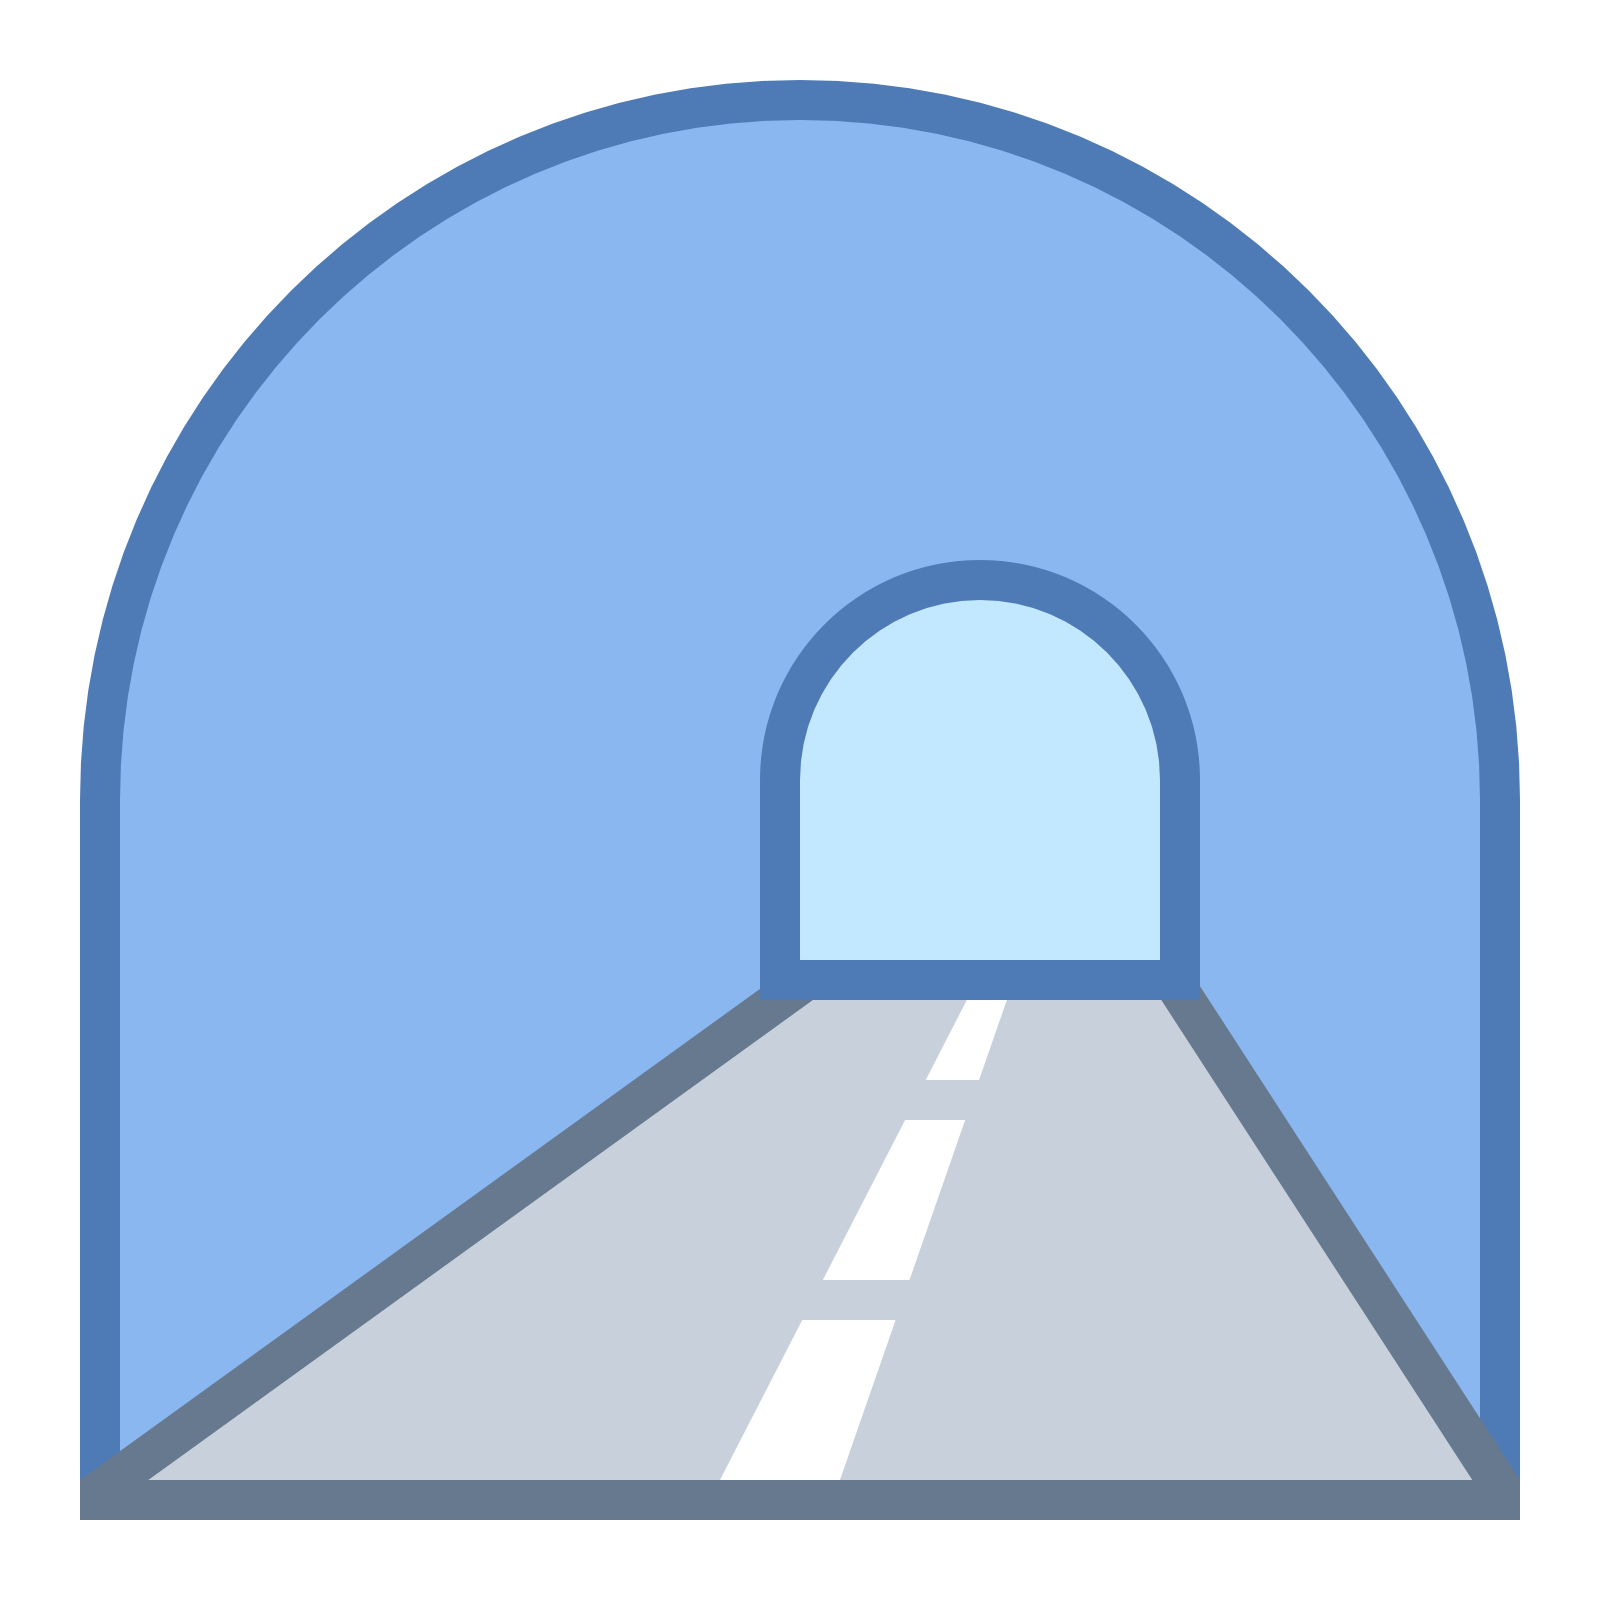 Tunnel Download Icon image #38498